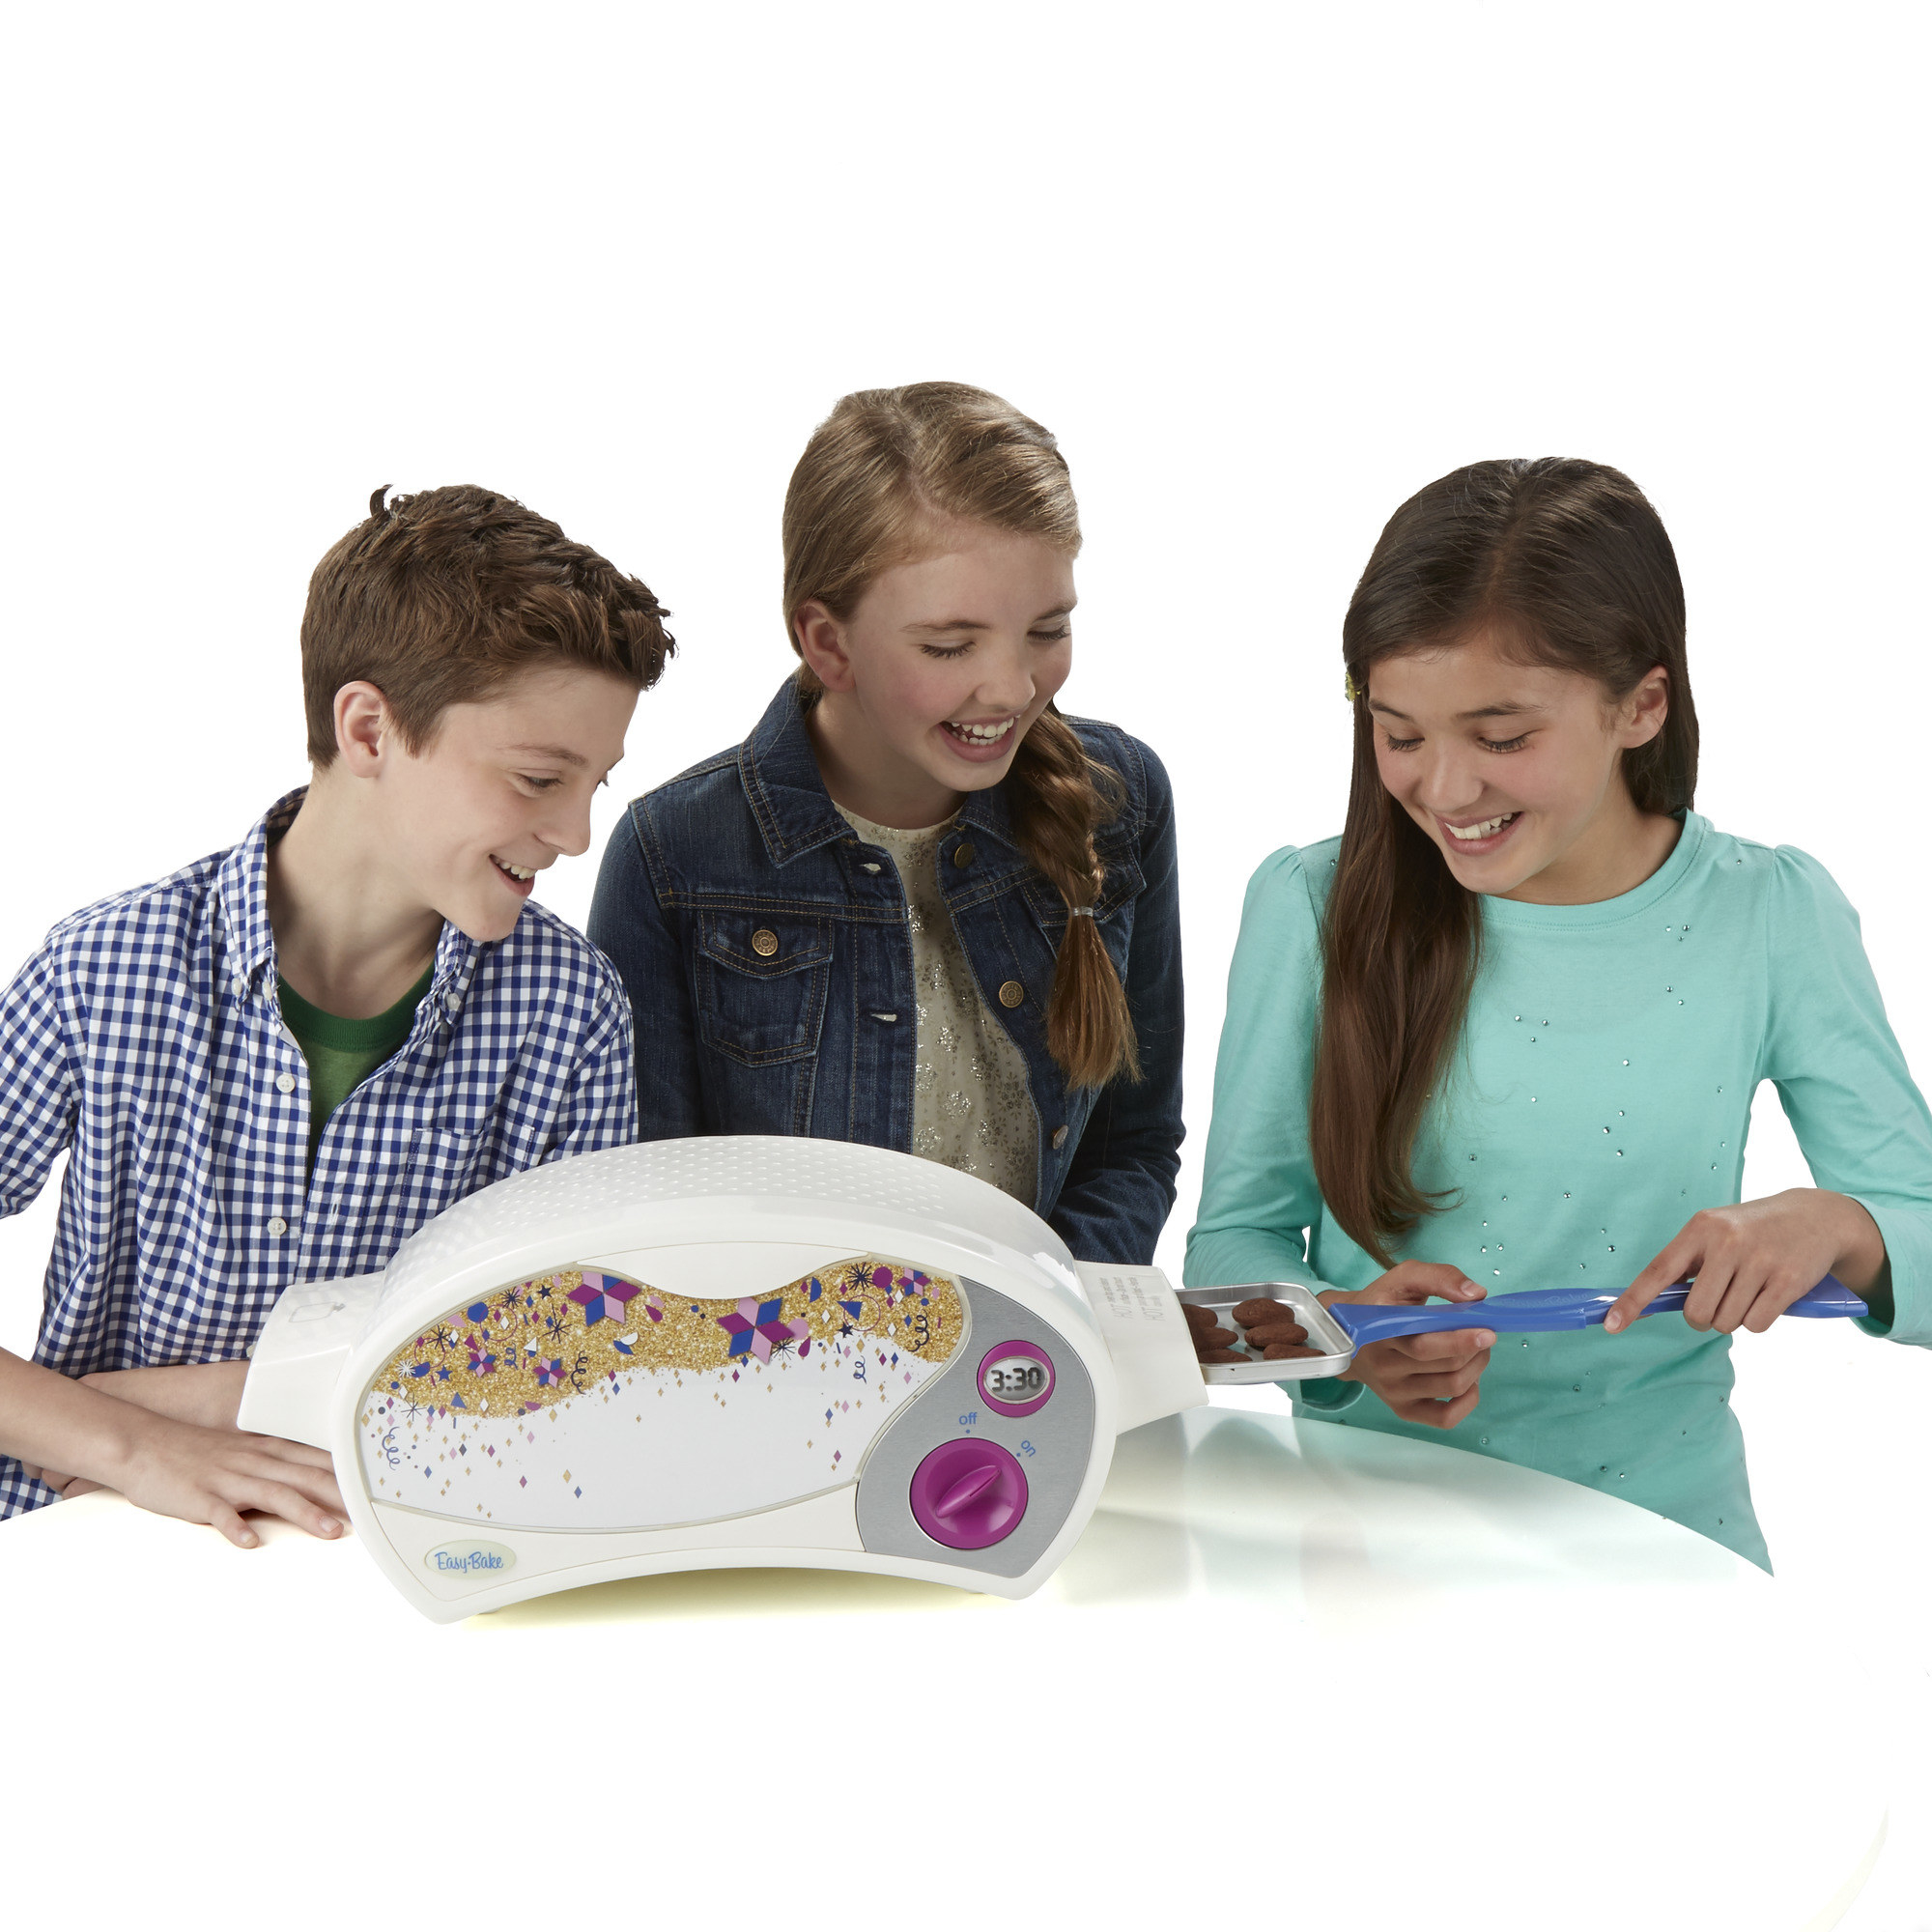 three kids playing with an easy bake oven and putting a tray in